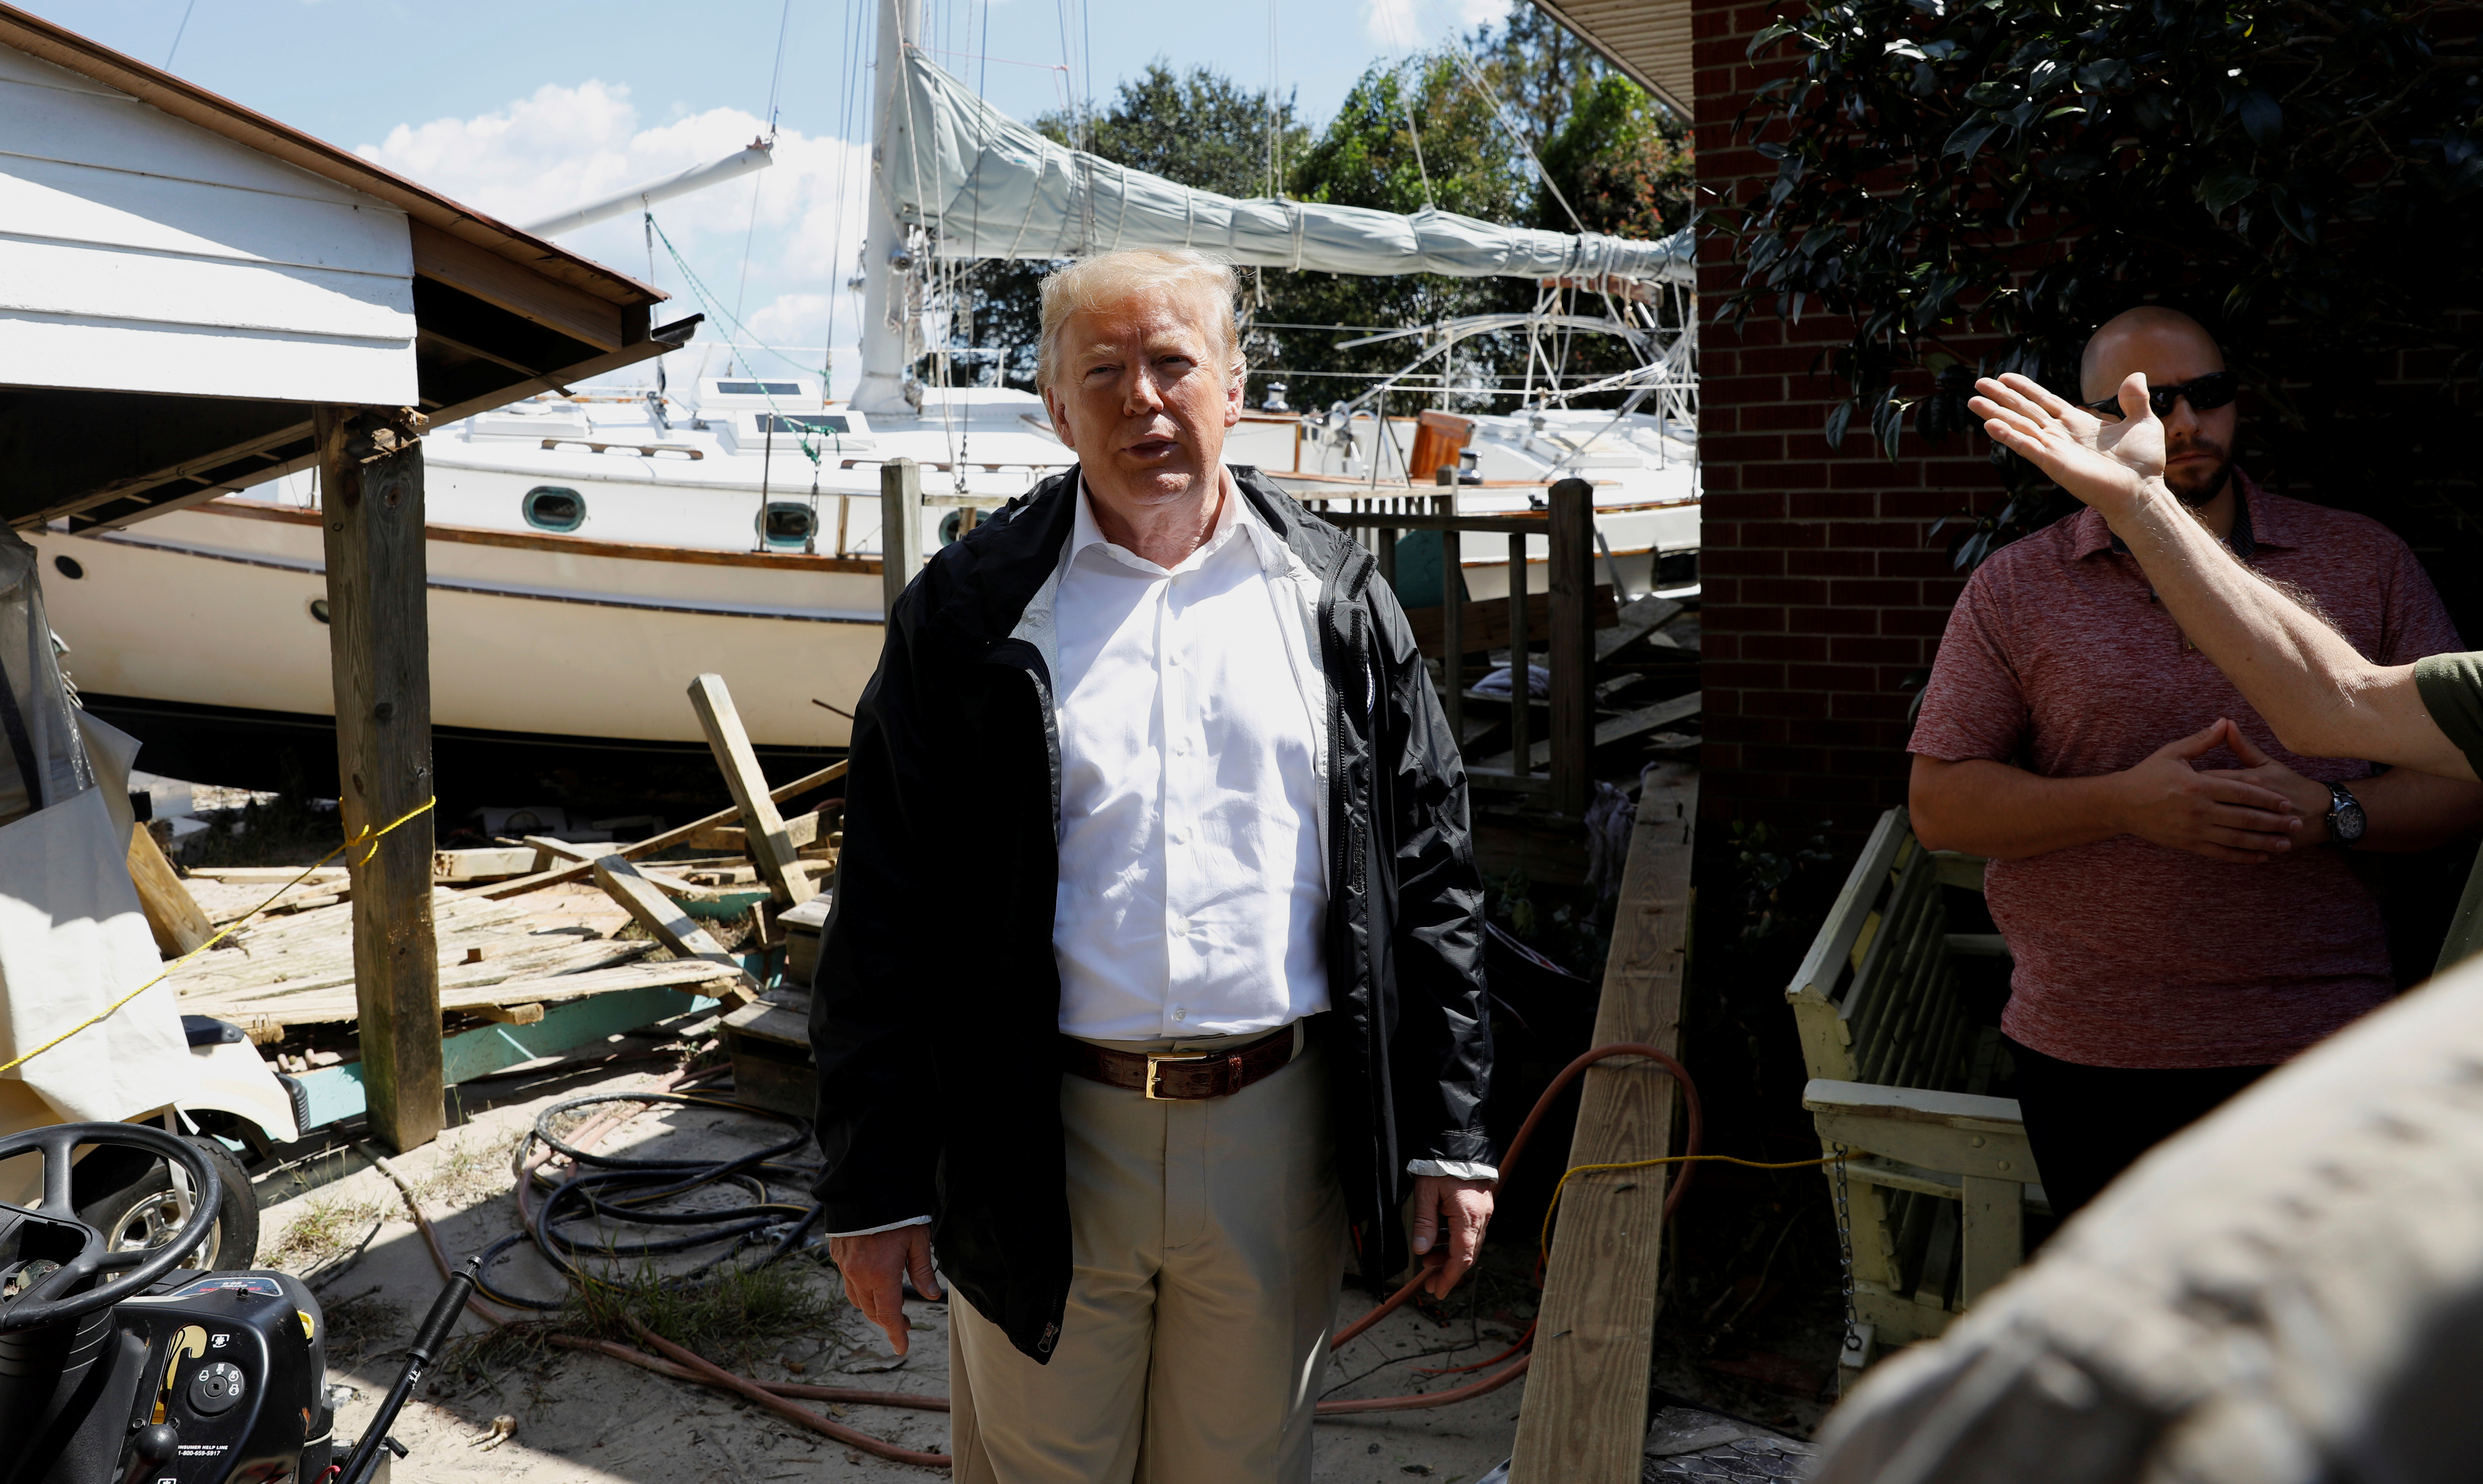 U.S. President Trump visits participates in a tour of Hurricane Florence damage in New Bern, North Carolina